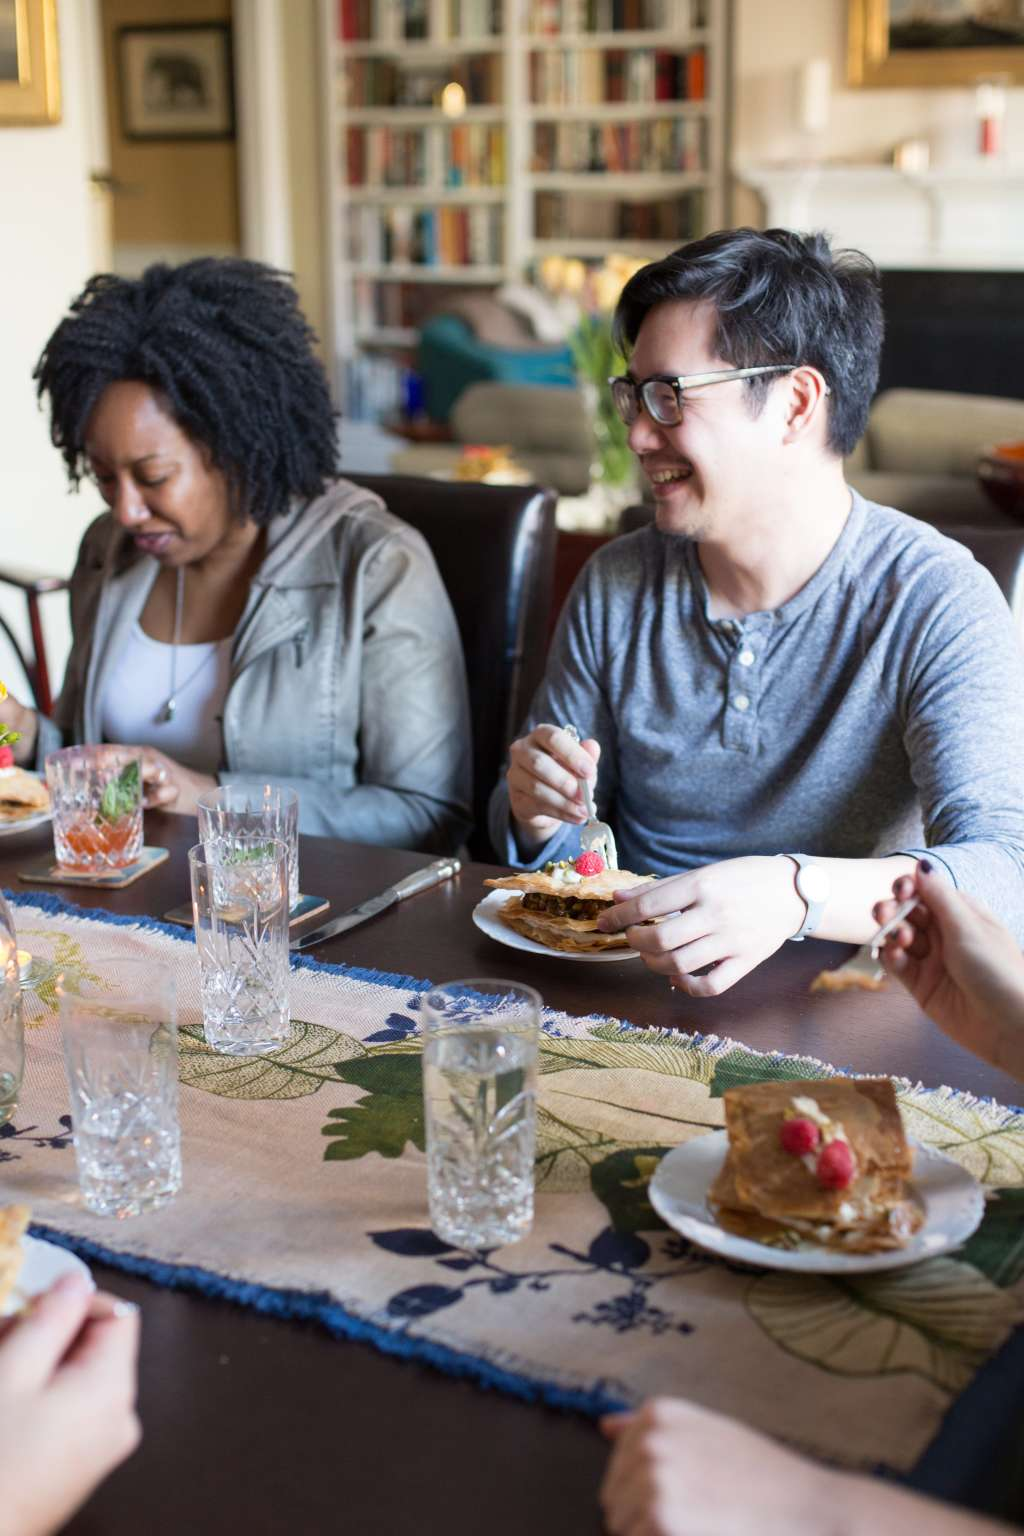 5 Rules for Hosting a Crappy Dinner Party